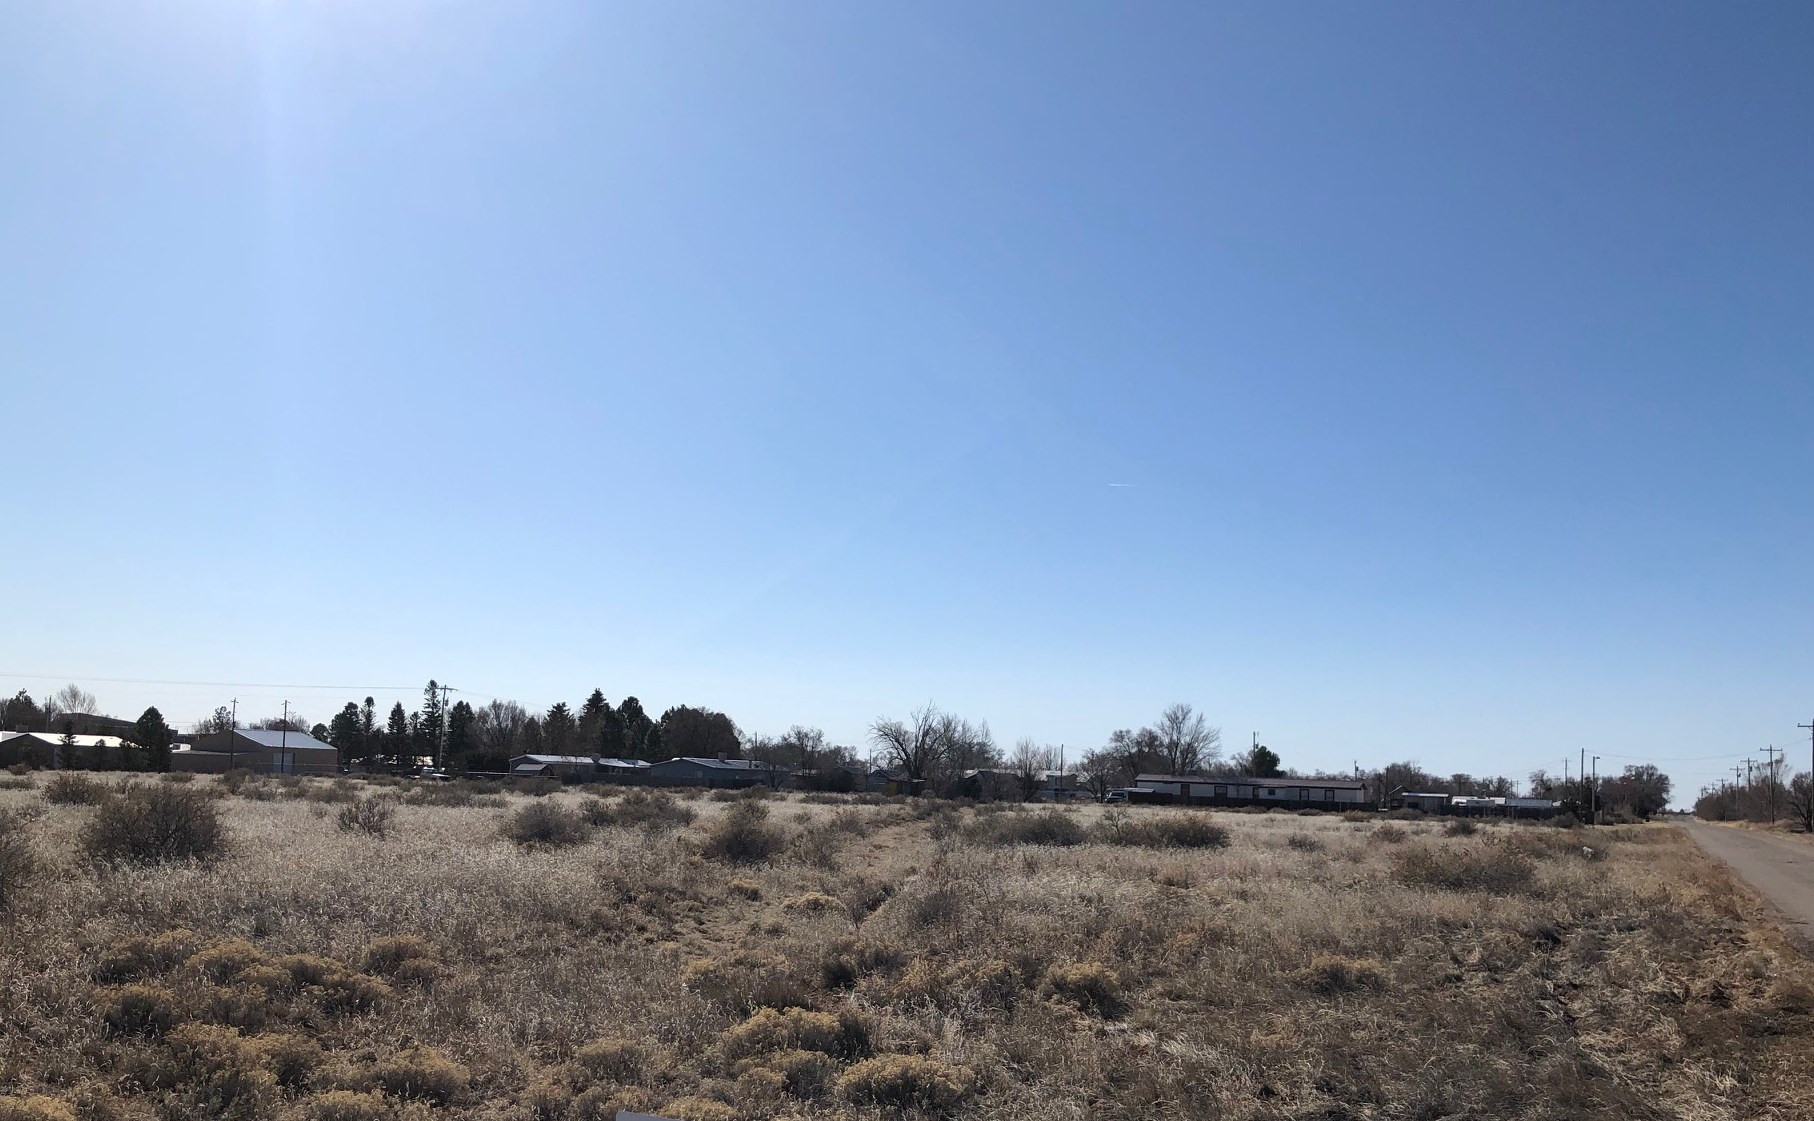 Moriarty, NM City Lots For Sale Near I-40 & Highway 41